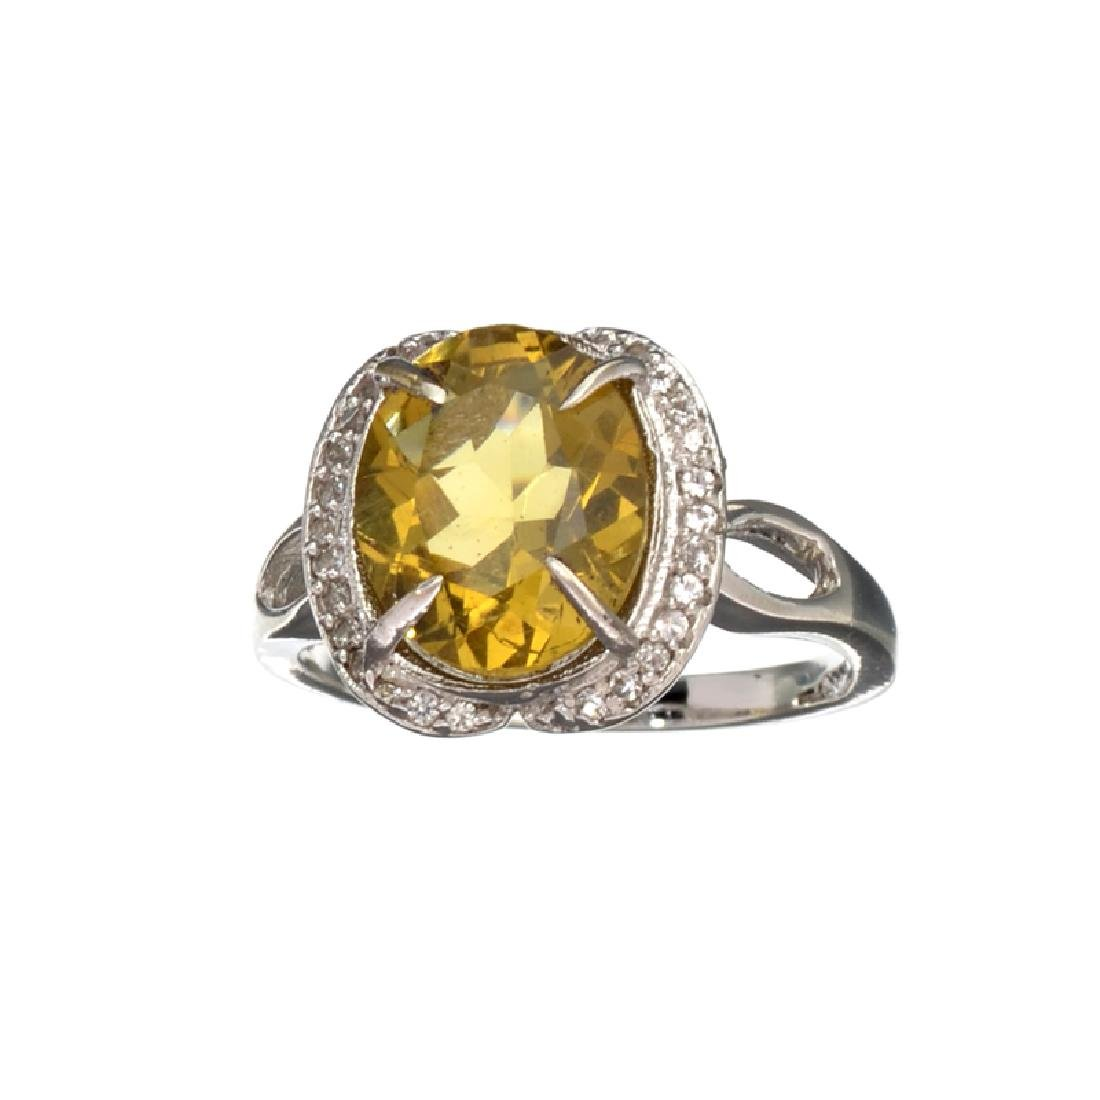 APP: 0.8k Fine Jewerly 3.00CT Oval Cut Citrine And